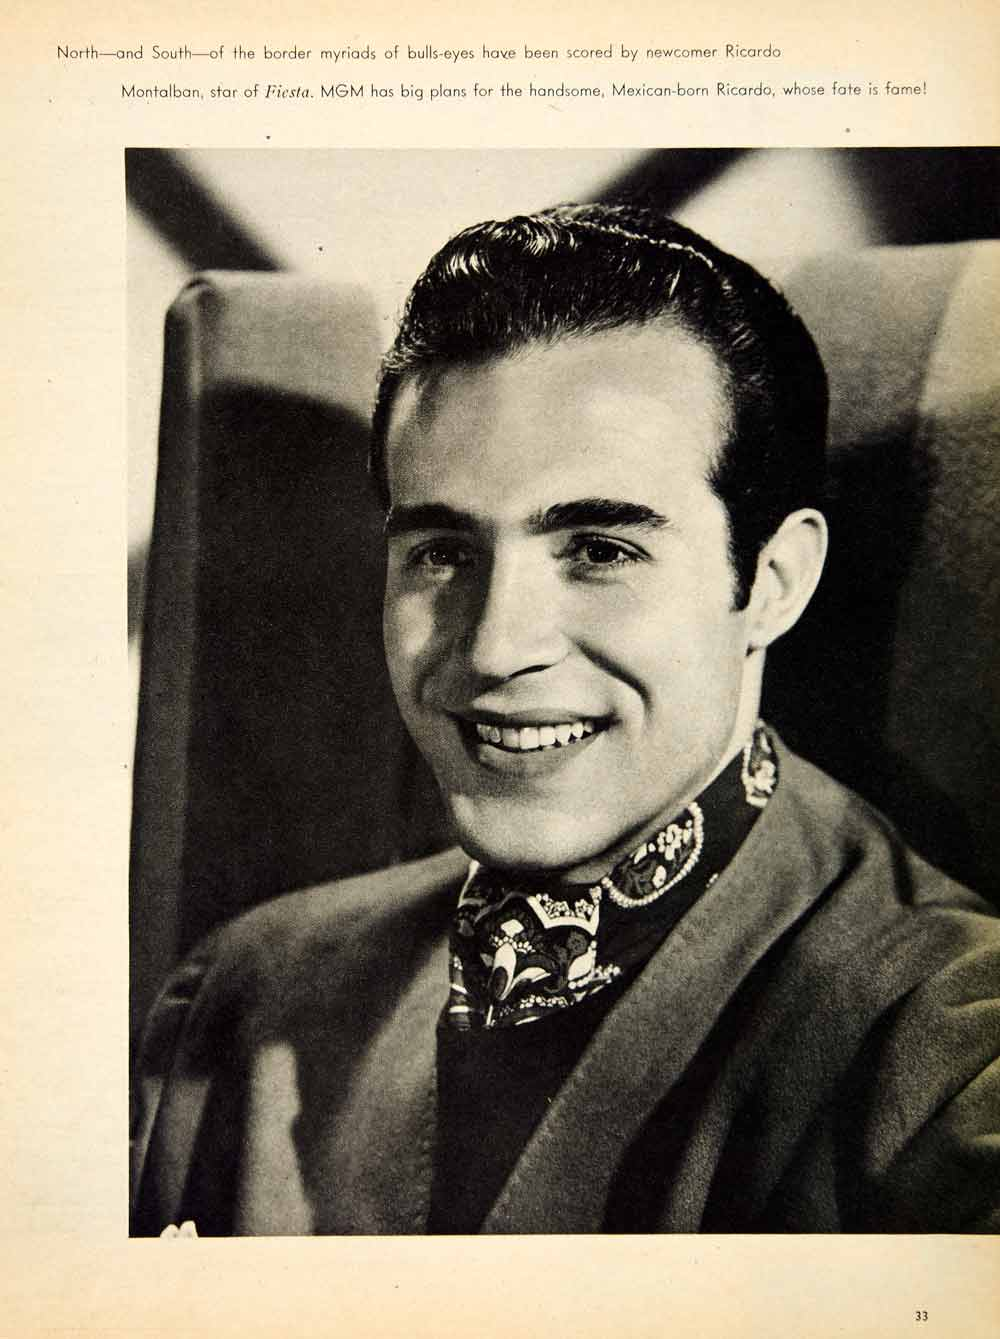 1947 Rotogravure Ricardo Montalban Fiesta MGM Hollywood Actor Famous MOV1